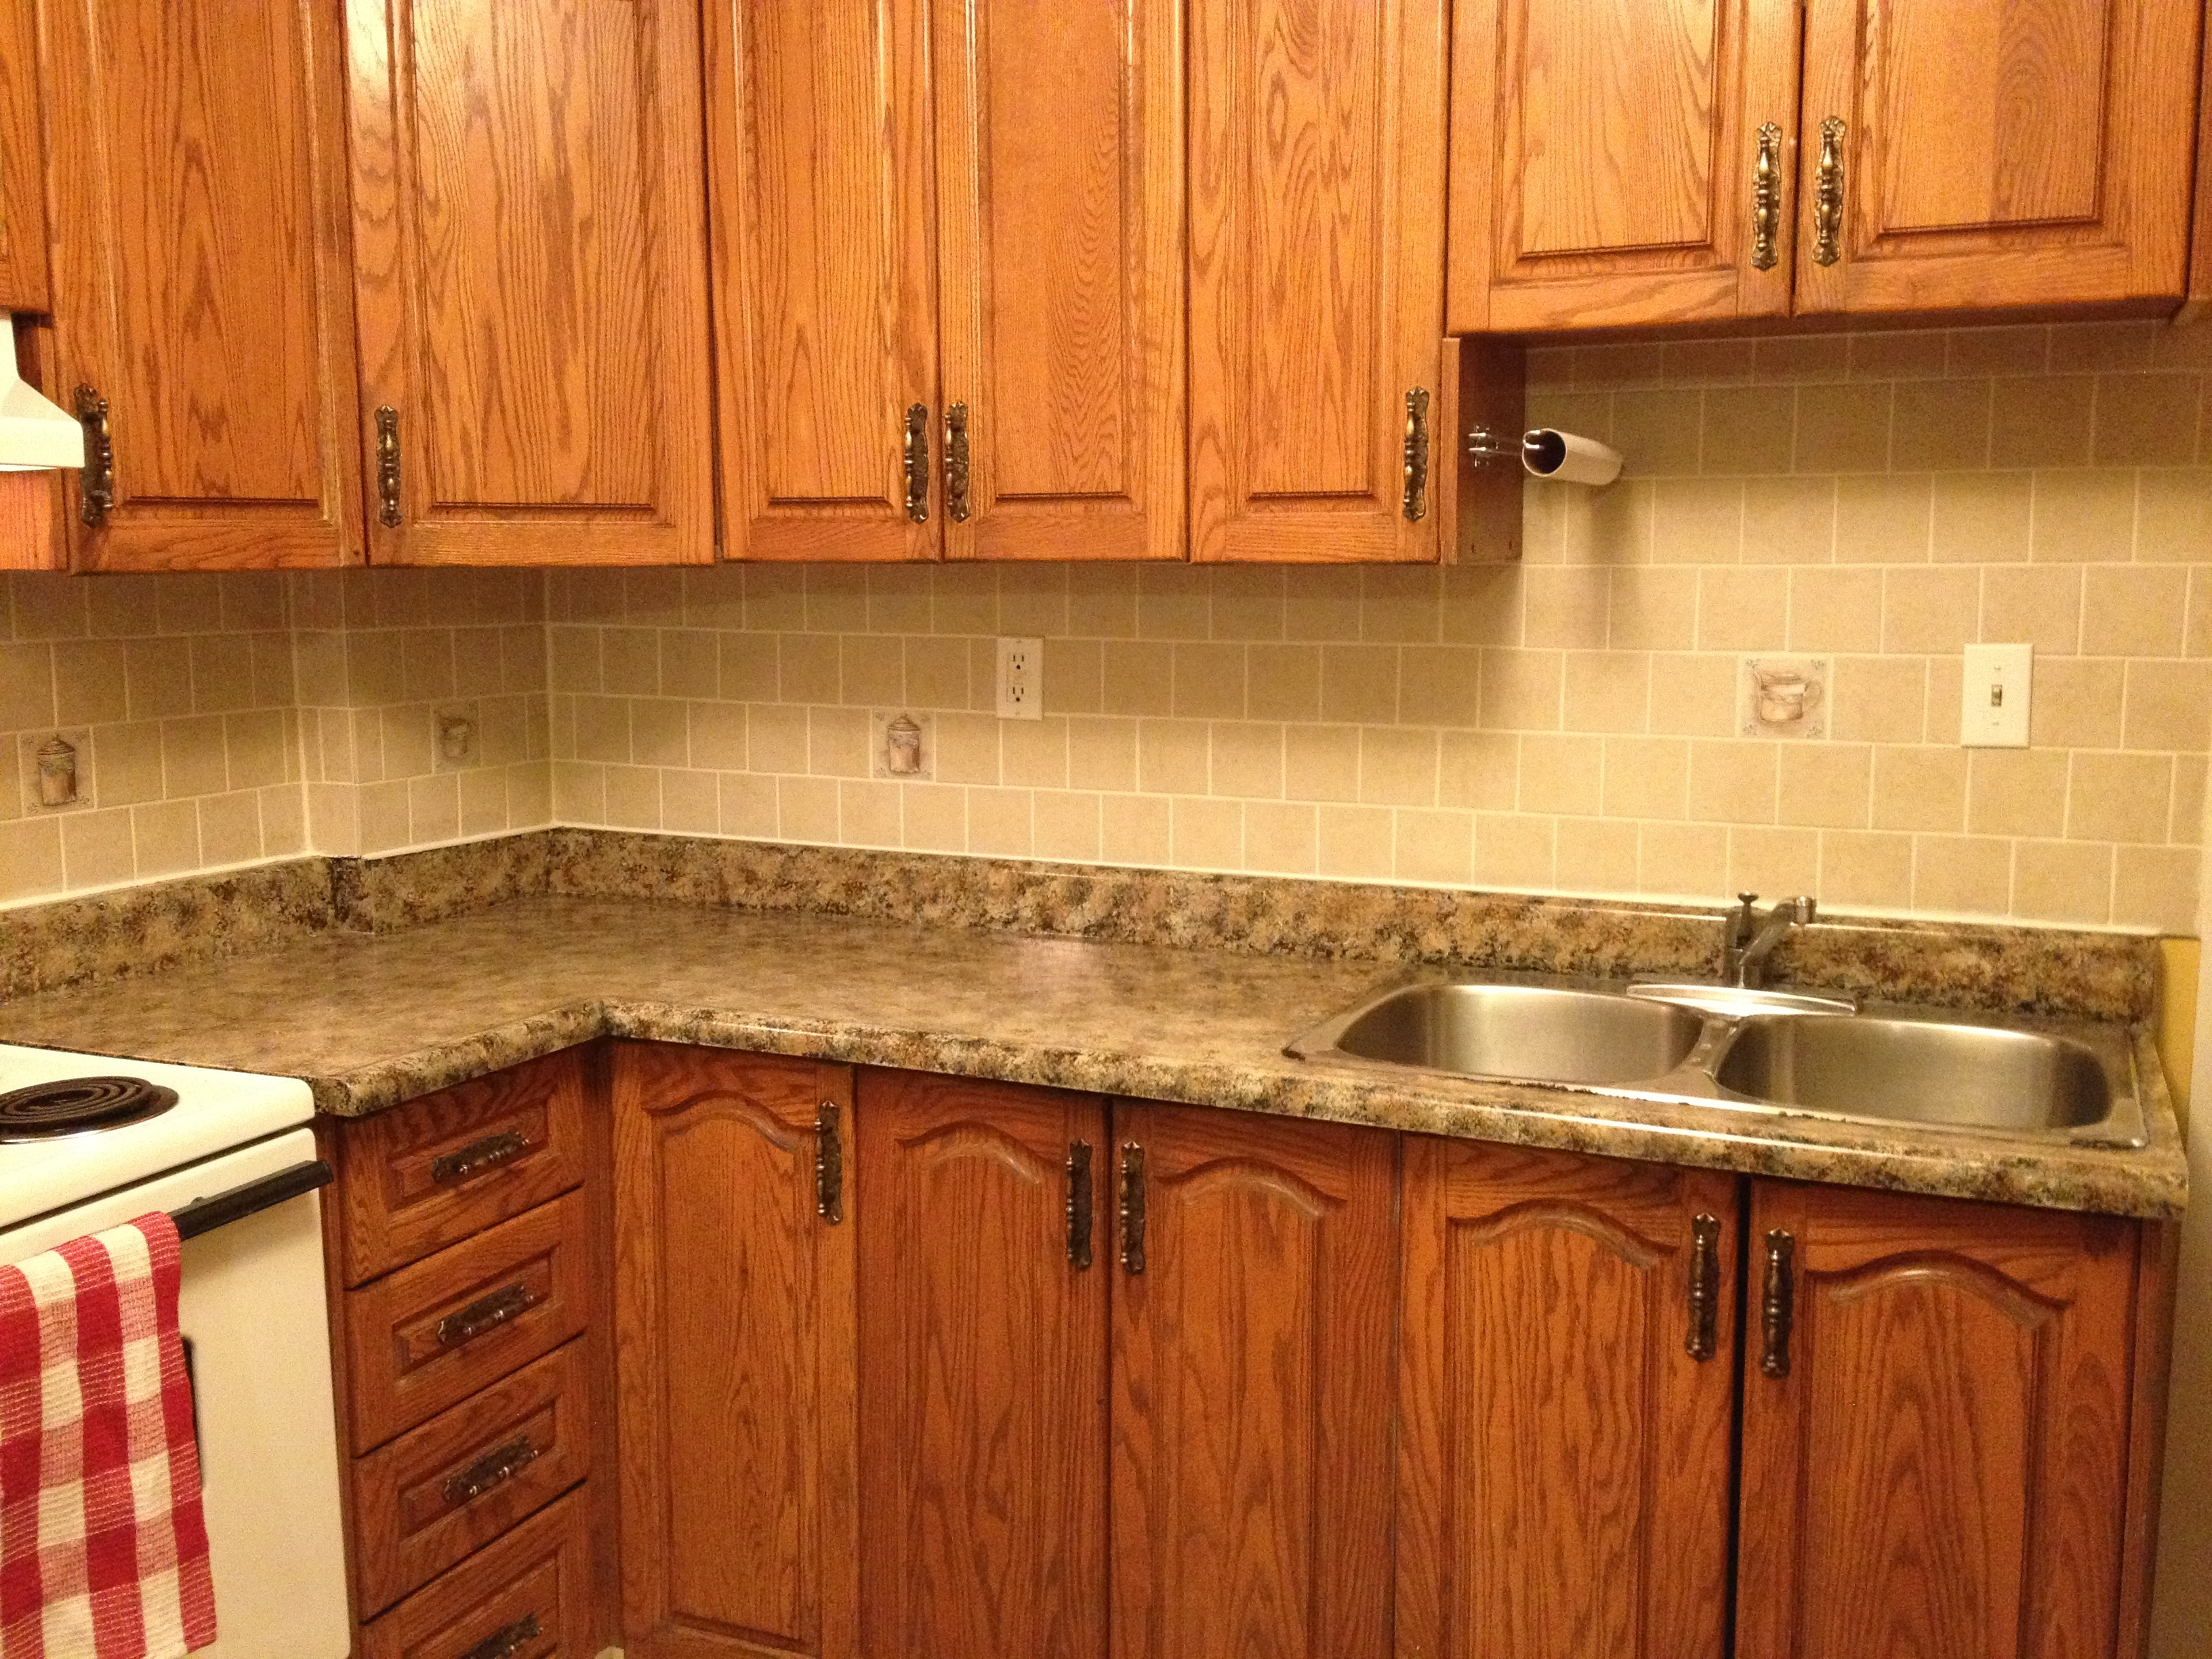 Countertop Paint Instructions : ... and I did our Countertop with the Giani Granite countertop Kit